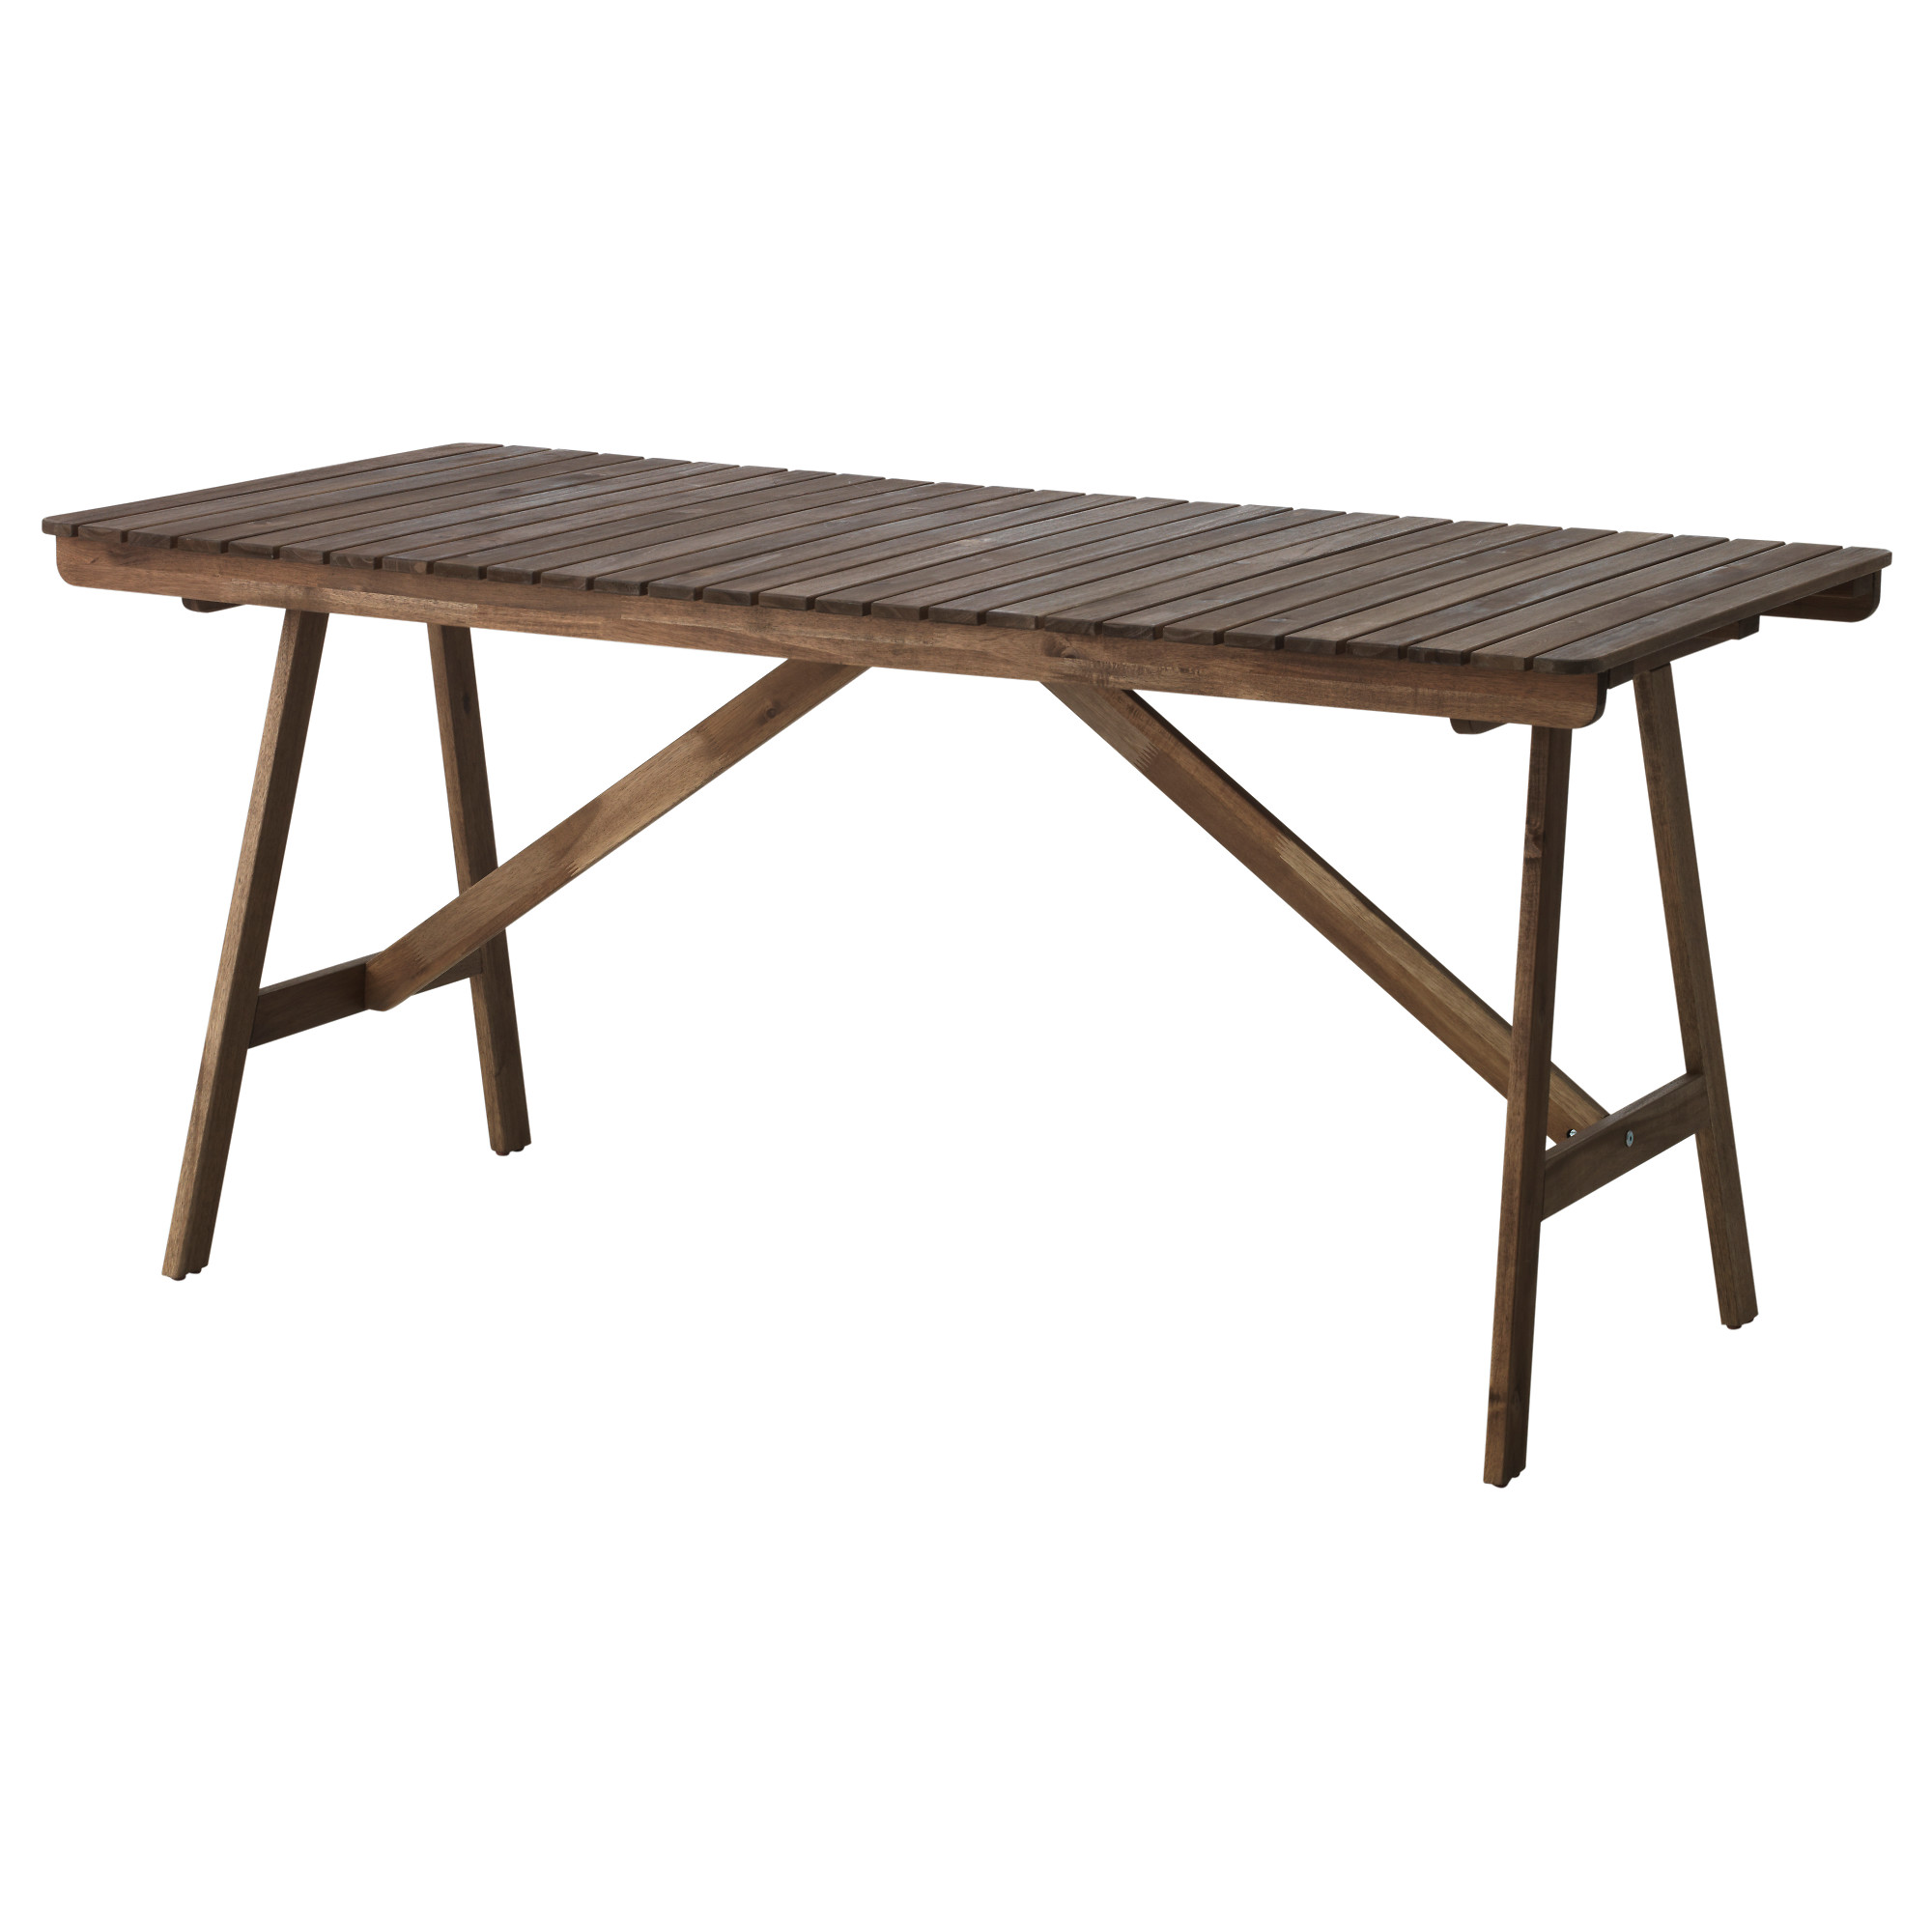 IKEA   FALHOLMEN, Table, Outdoor, For Added Durability, And So You Can  Enjoy The Natural Expression Of The Wood, The Furniture Has Been  Pre Treated With A ...